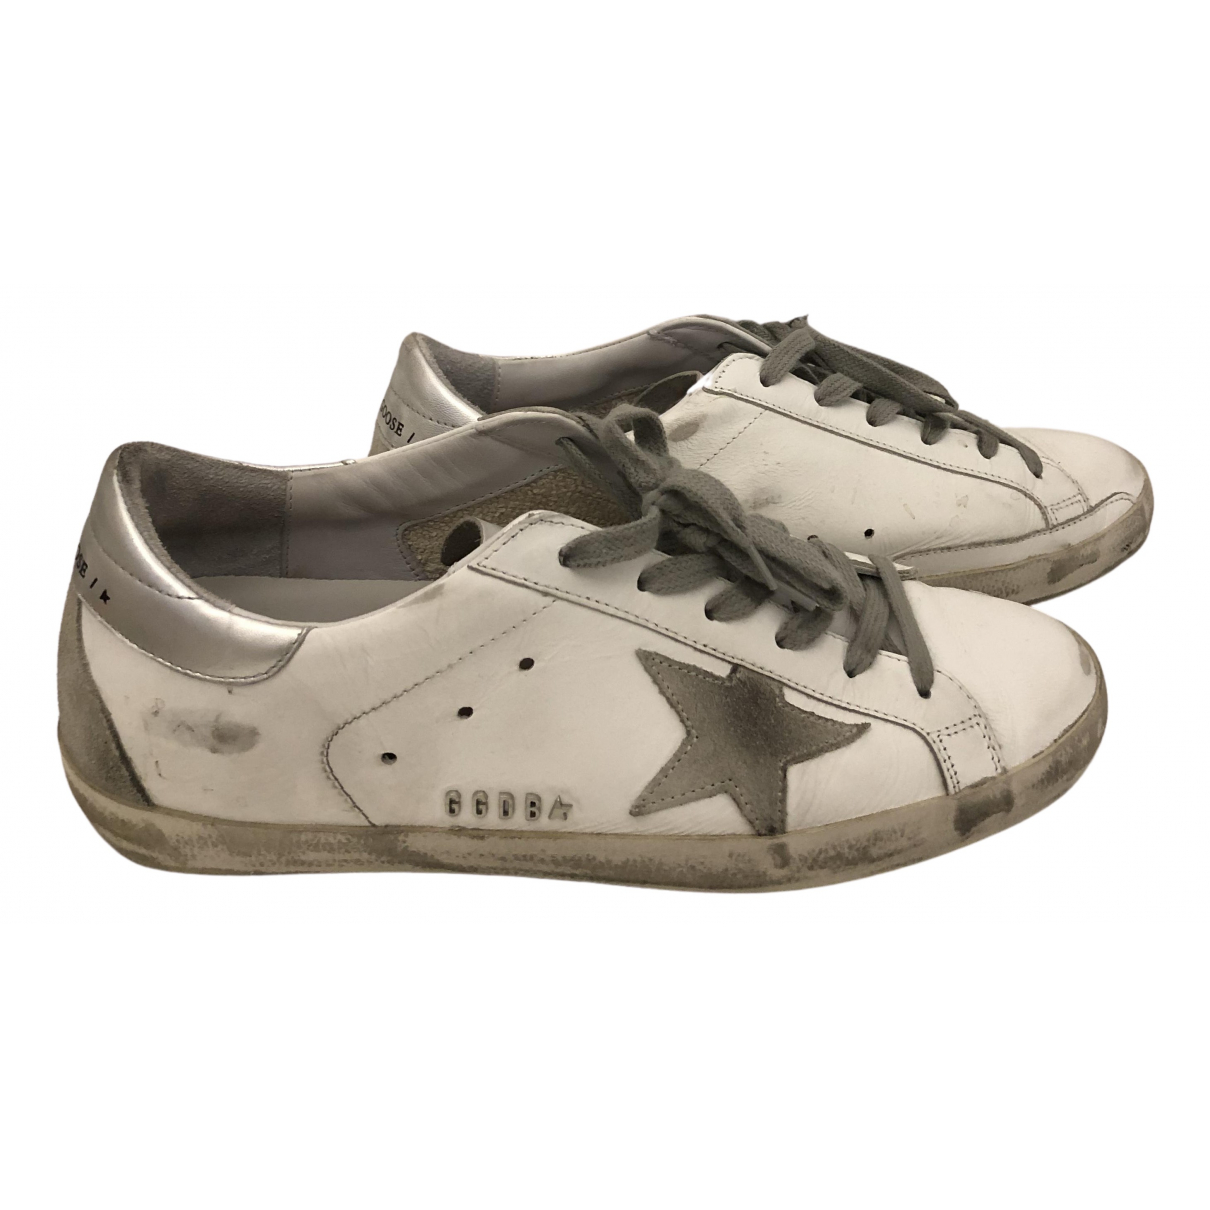 Golden Goose Superstar White Leather Trainers for Women 40 EU